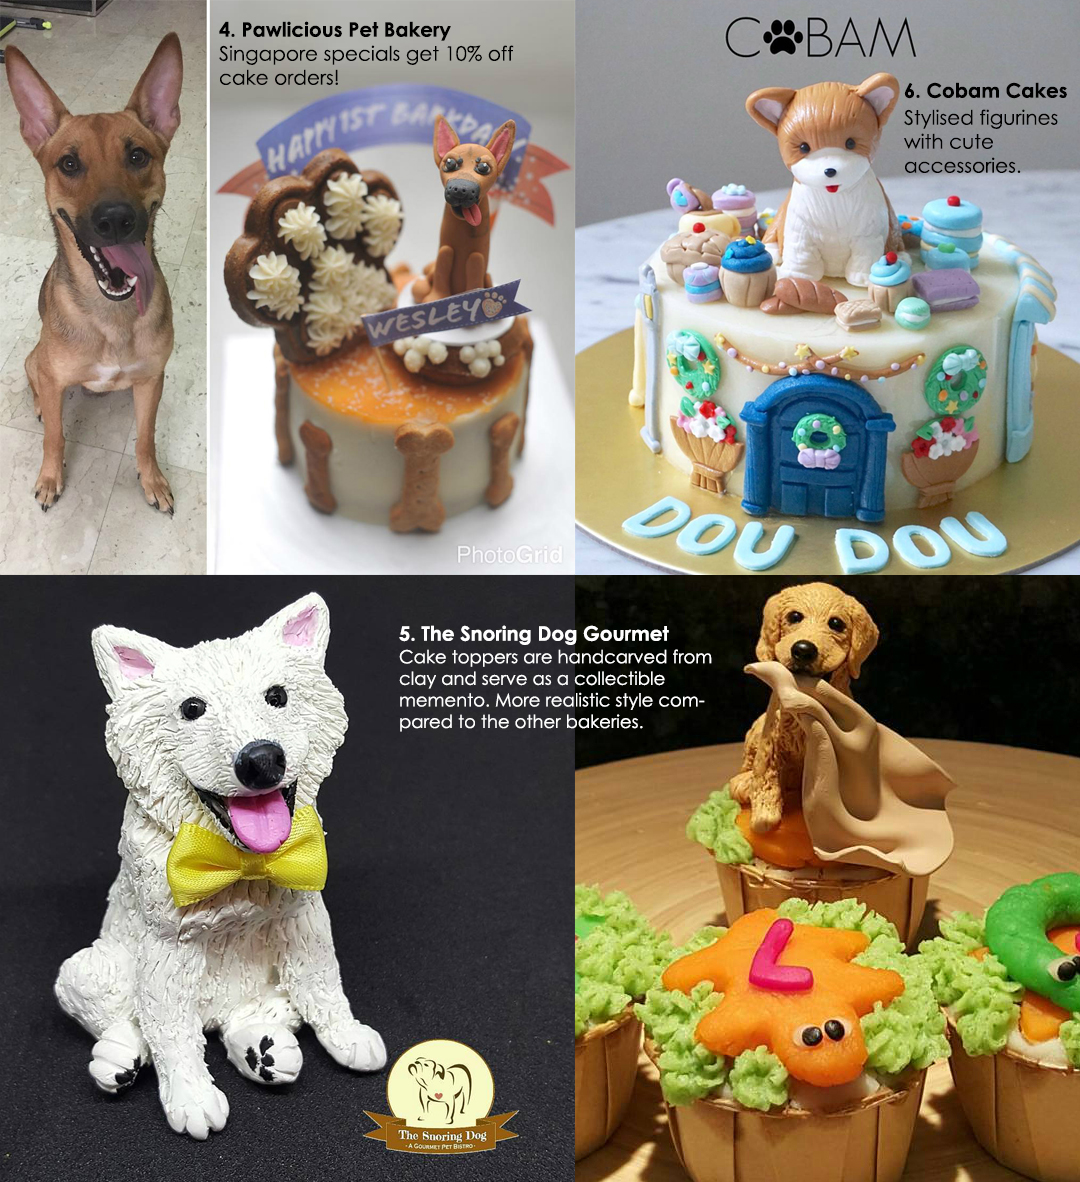 21 Shops To Buy A Cake Or Treats For Your Dog In Singapore We Live